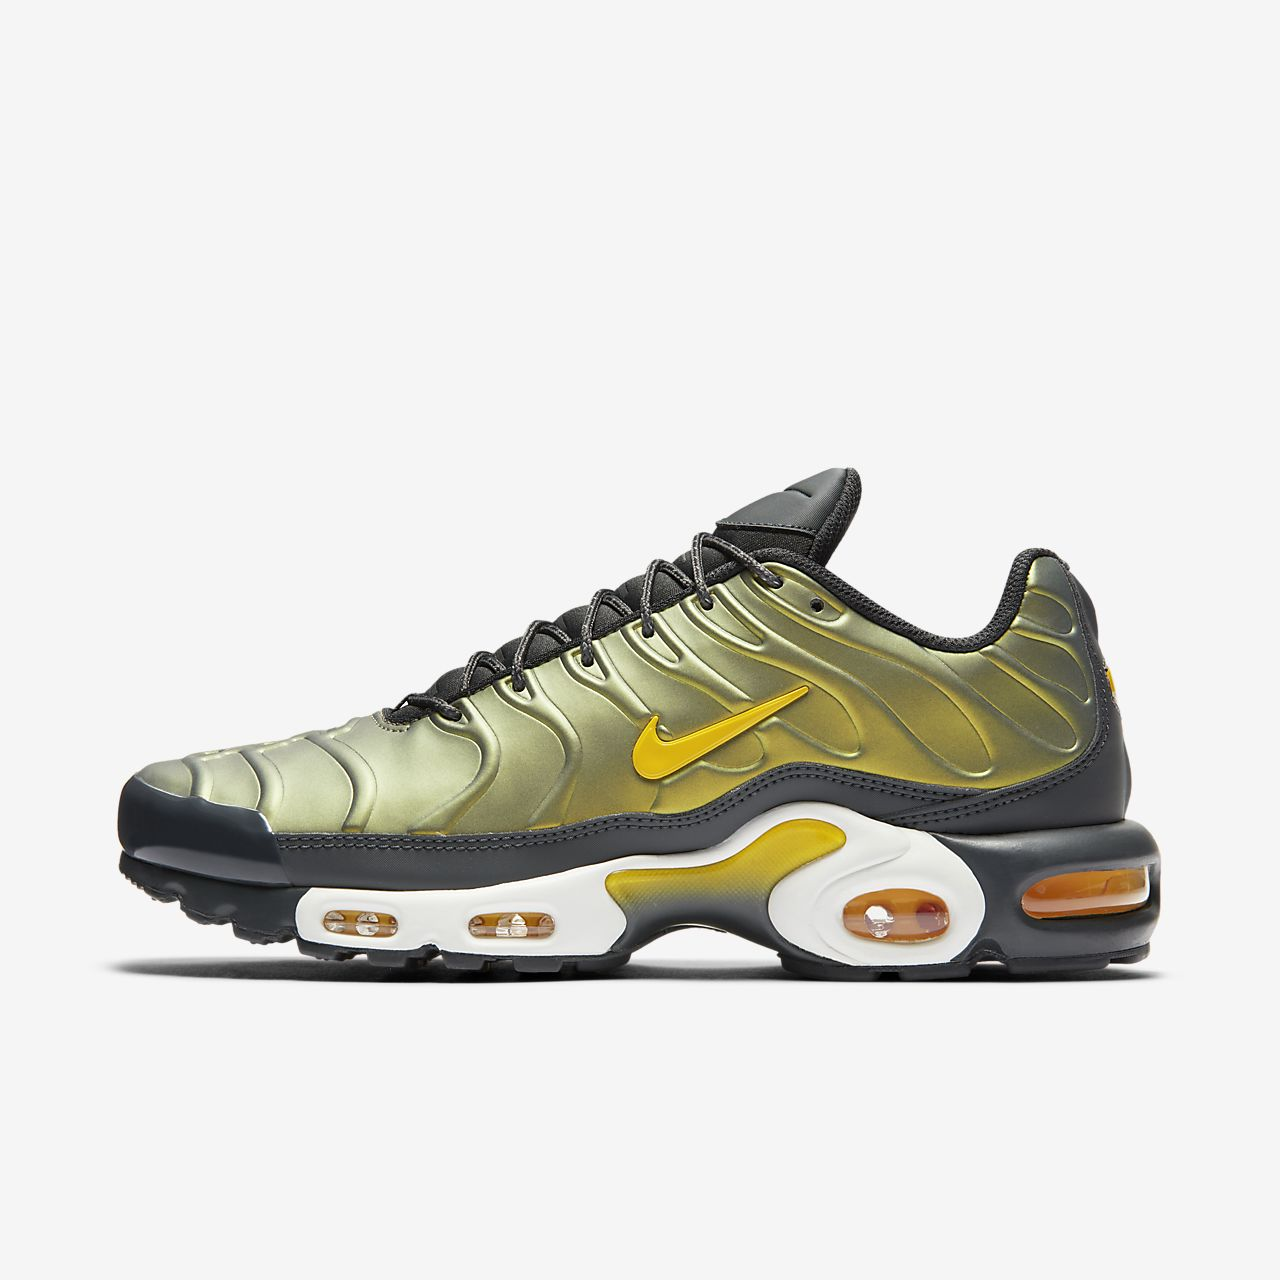 new styles 8988b 20fa7 ... Chaussure Nike Air Max Plus SE pour Homme